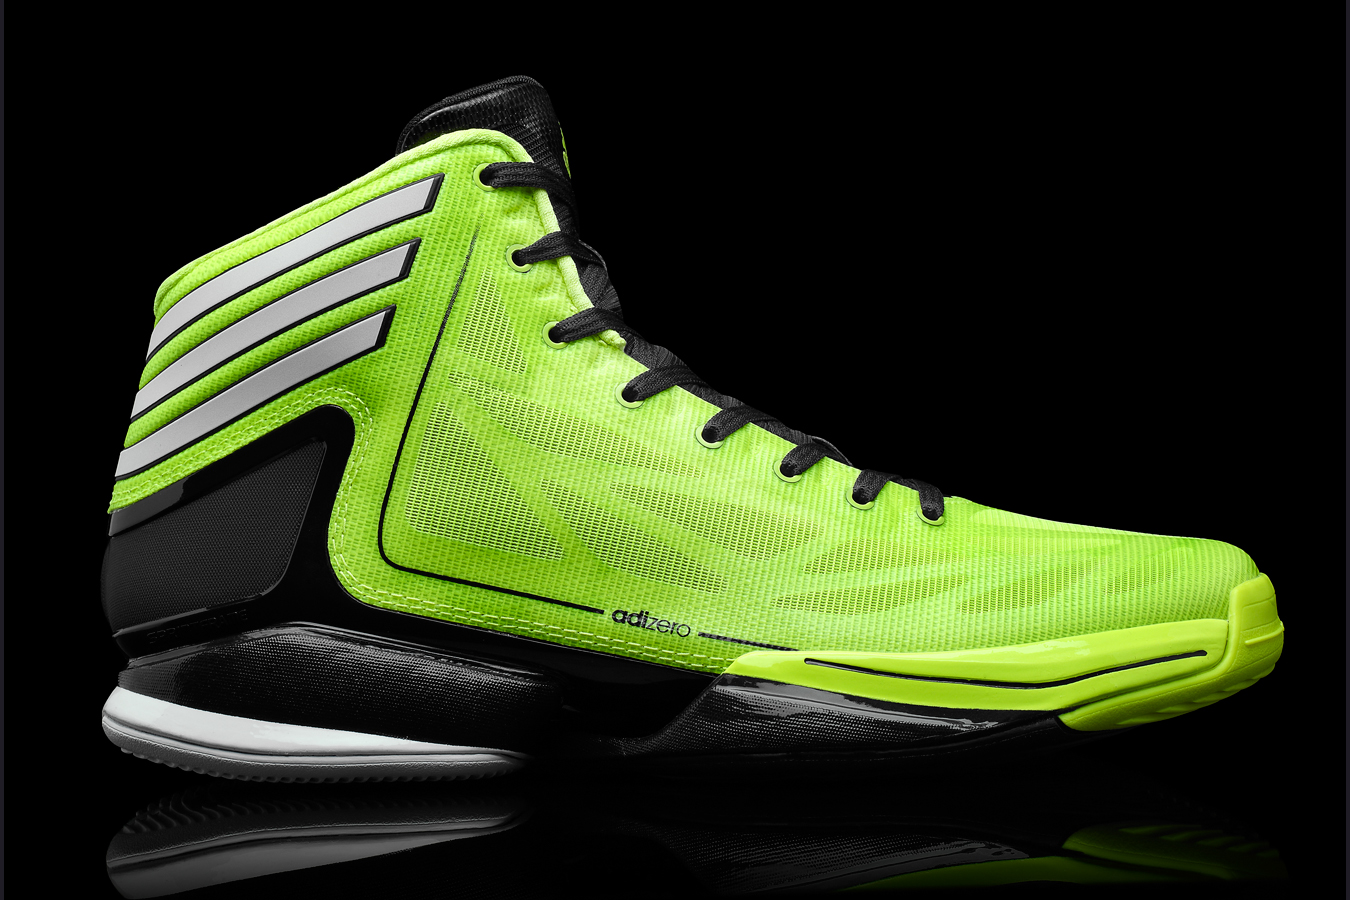 adidas basketball shoes clearance, OFF 71%,Cheap price!